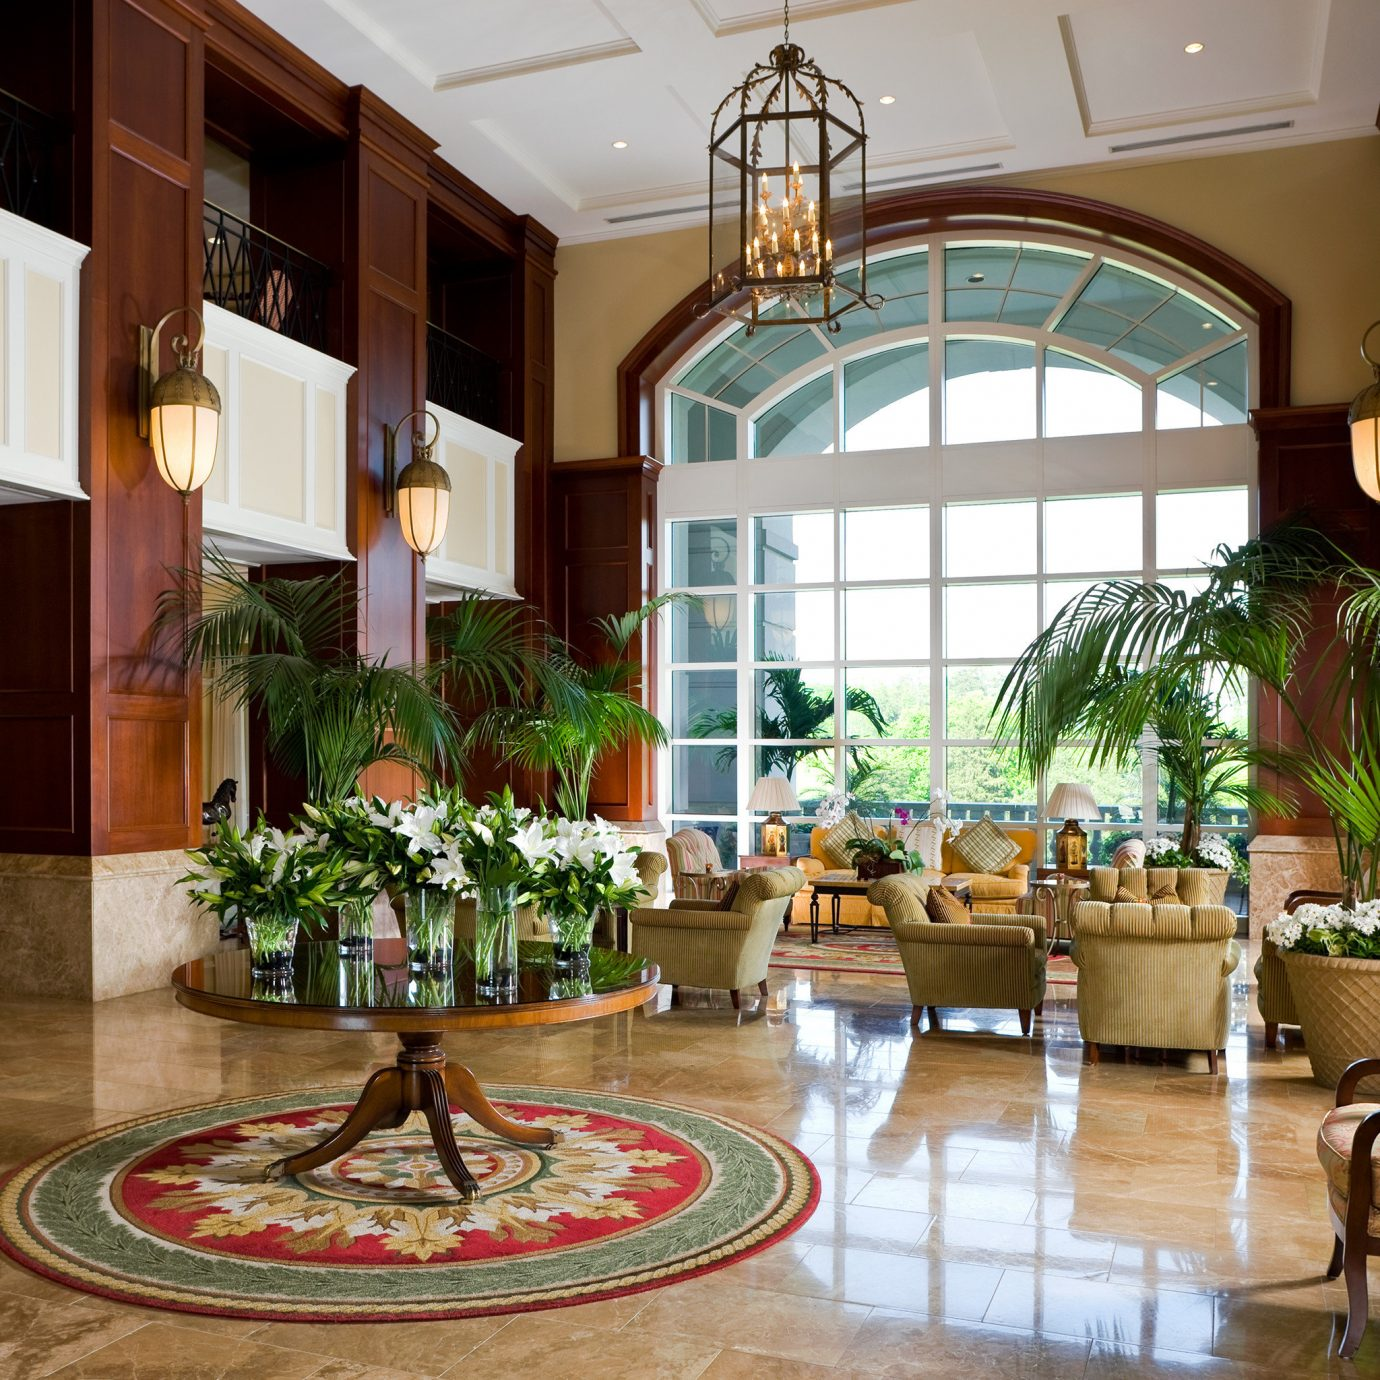 Classic Lobby Lounge Luxury property home condominium living room Courtyard mansion restaurant